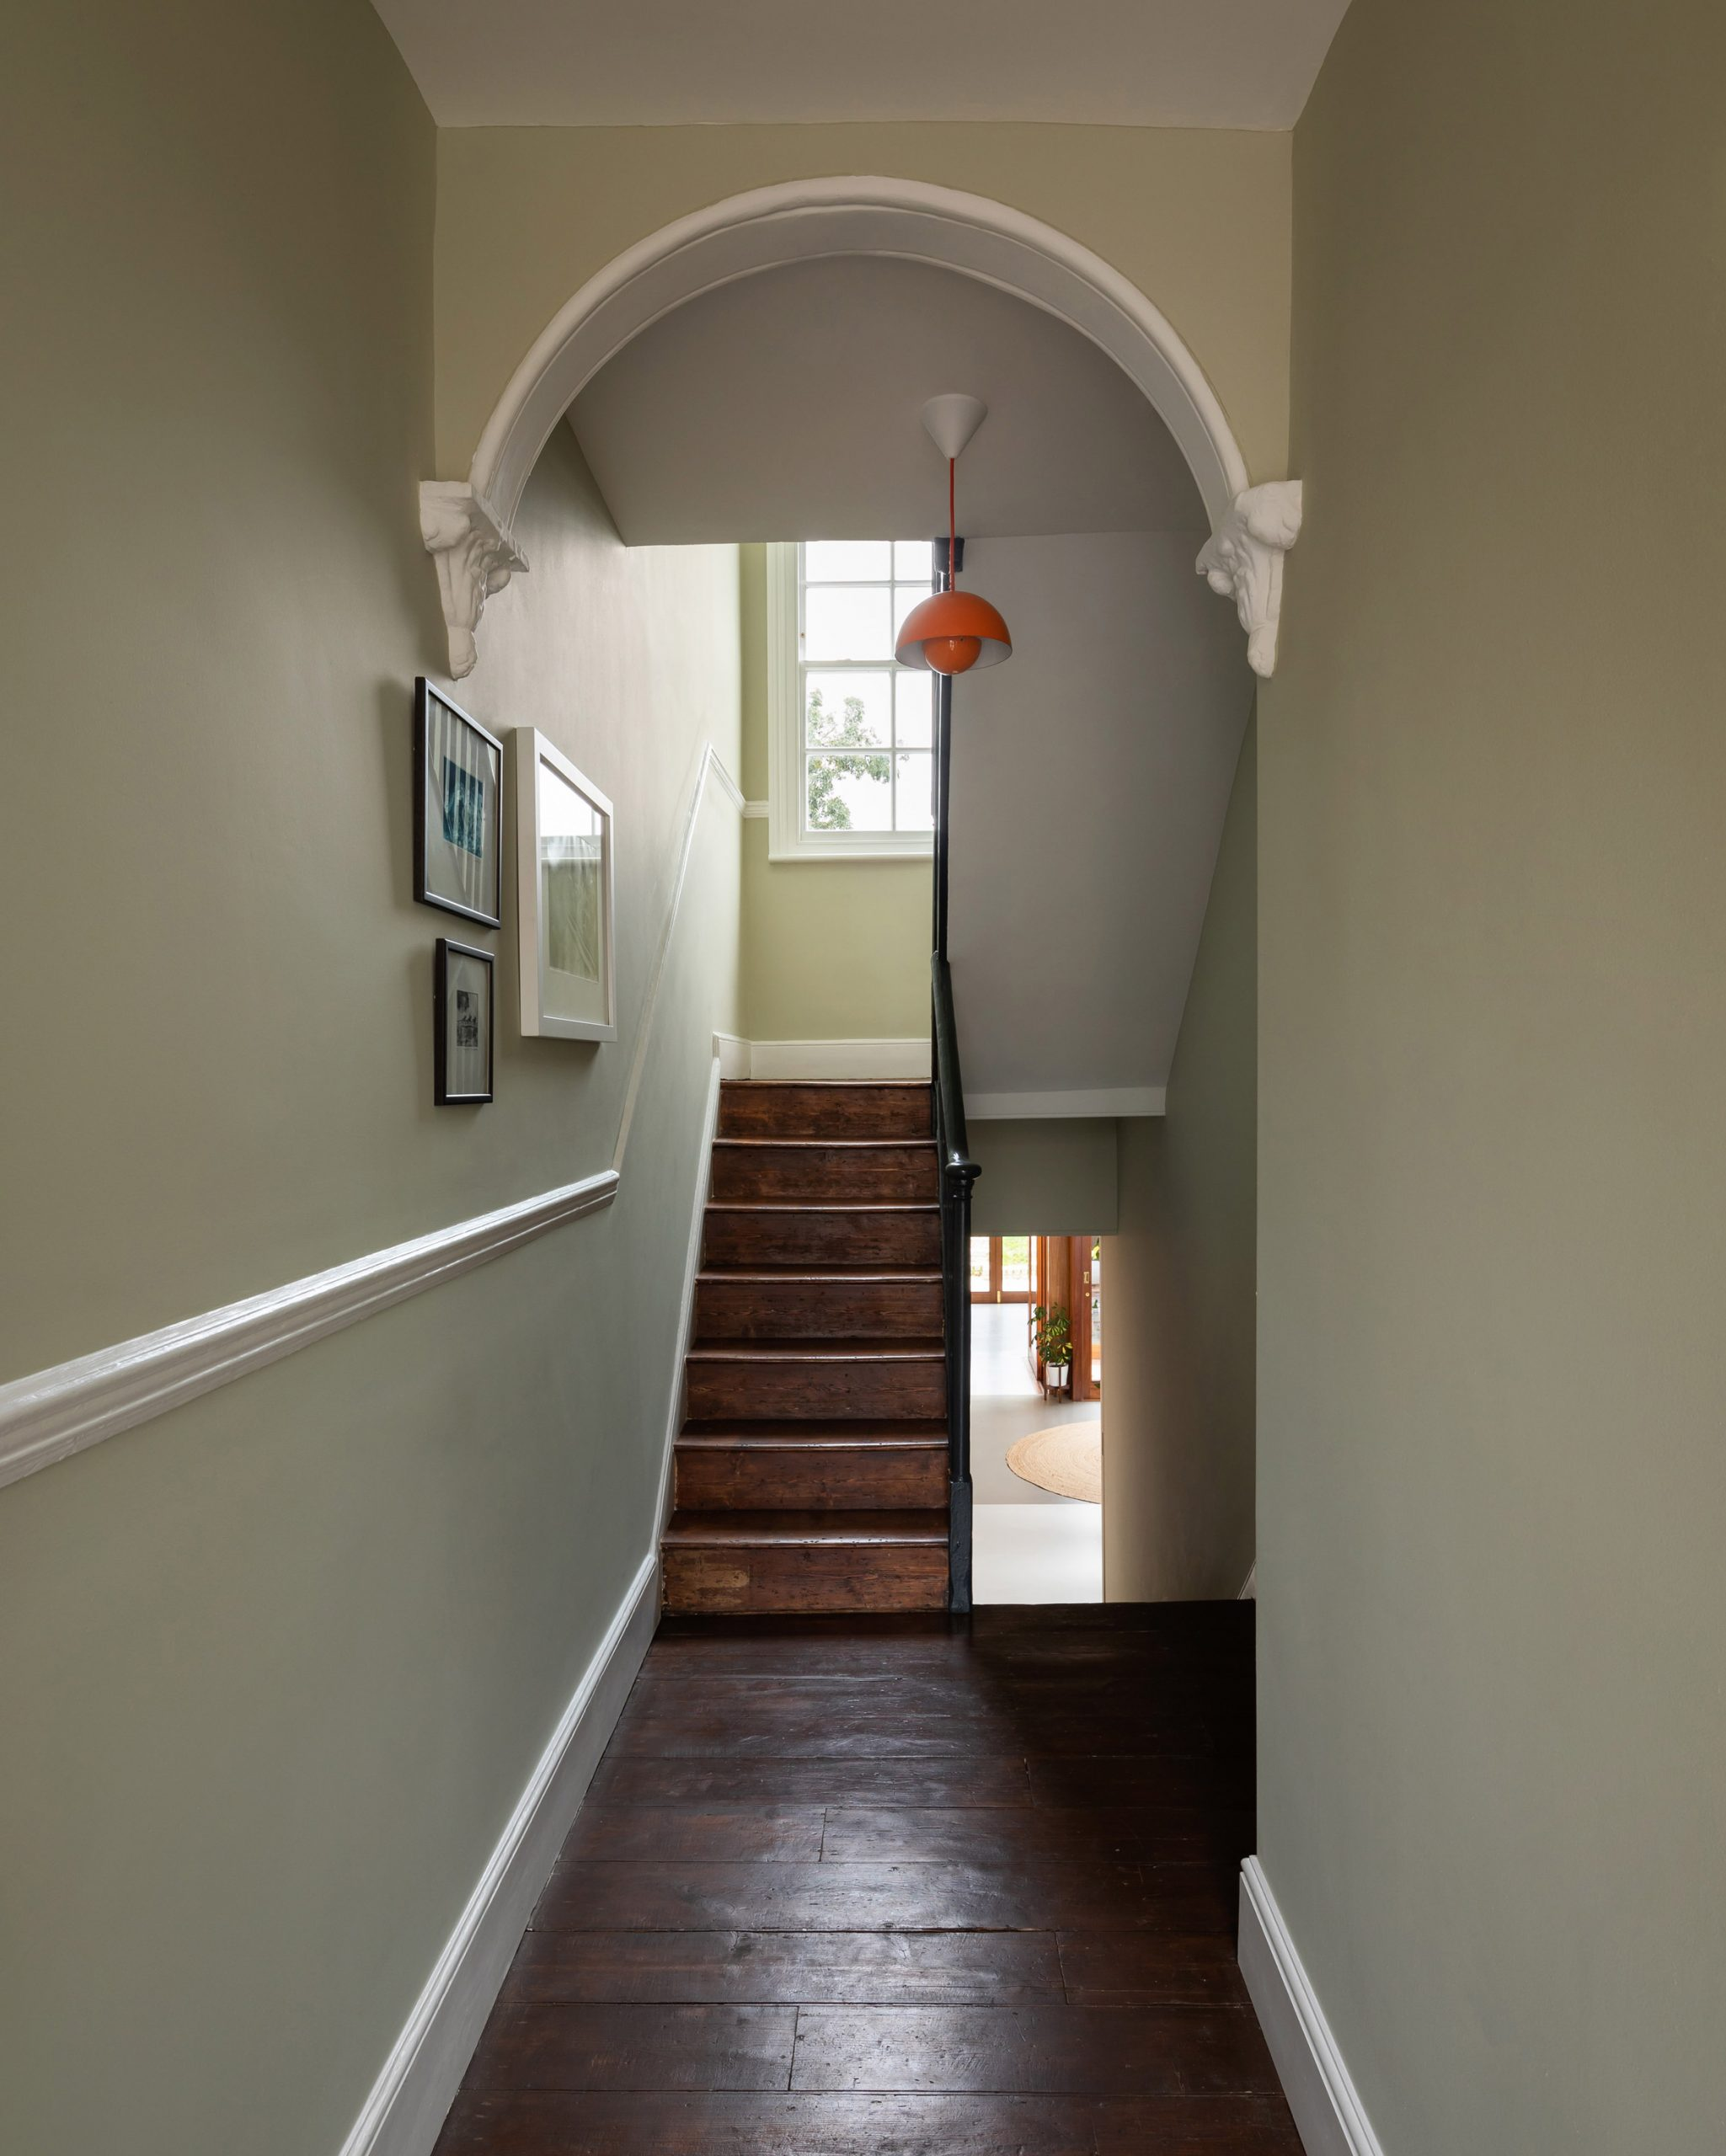 A hallway will pale green walls and hardwood floors